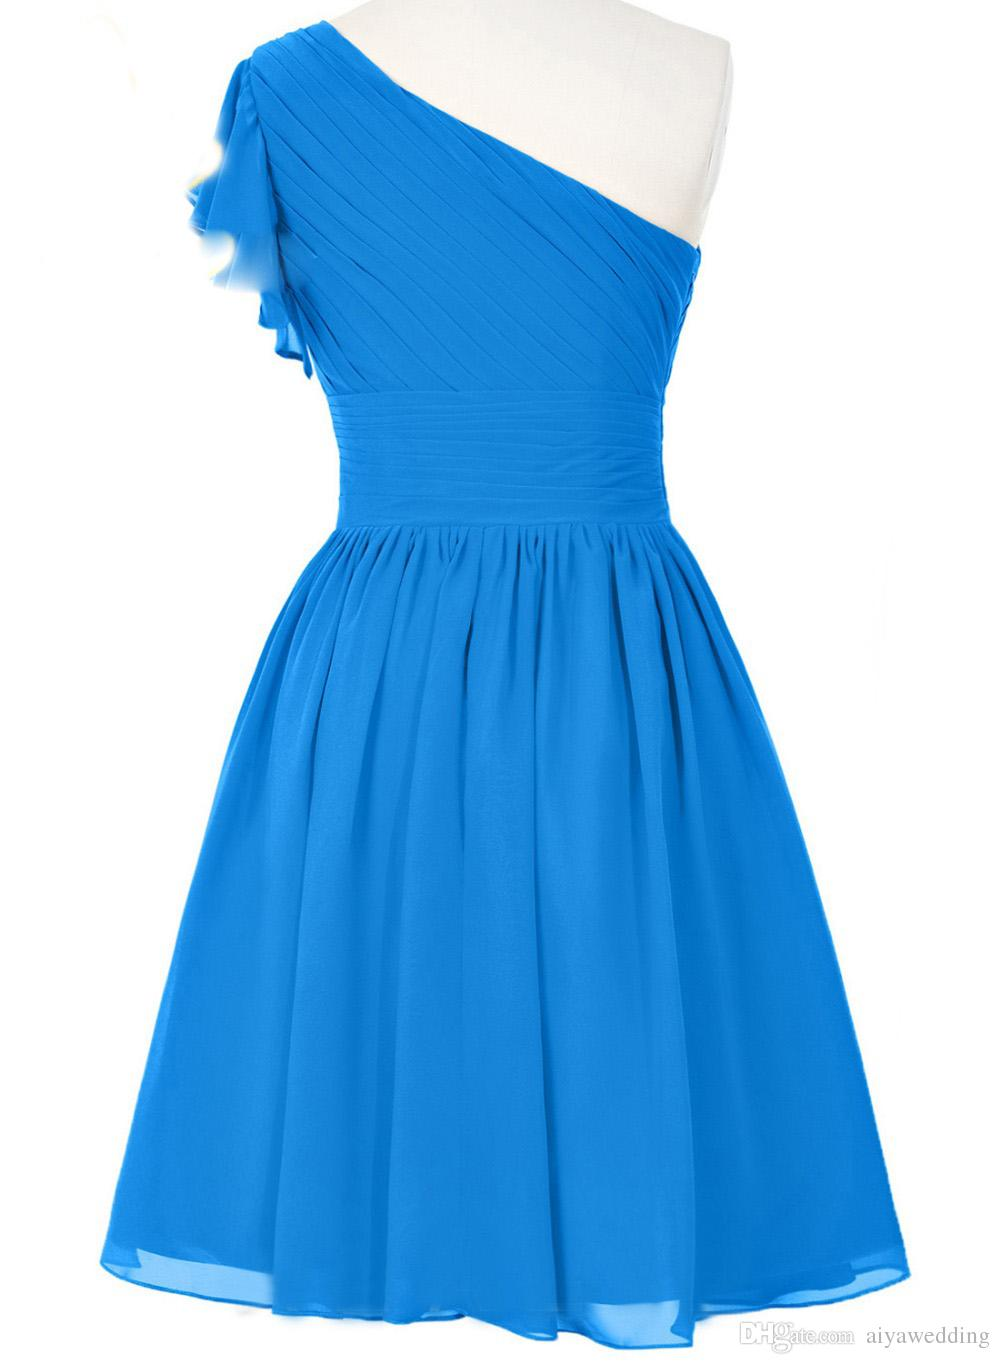 Cheap Sexy Blue Short Chiffon Homecoming Dresses 2019 Beaded Prom Party Gowns Vestido Robe Soiree For Women Summer Wear